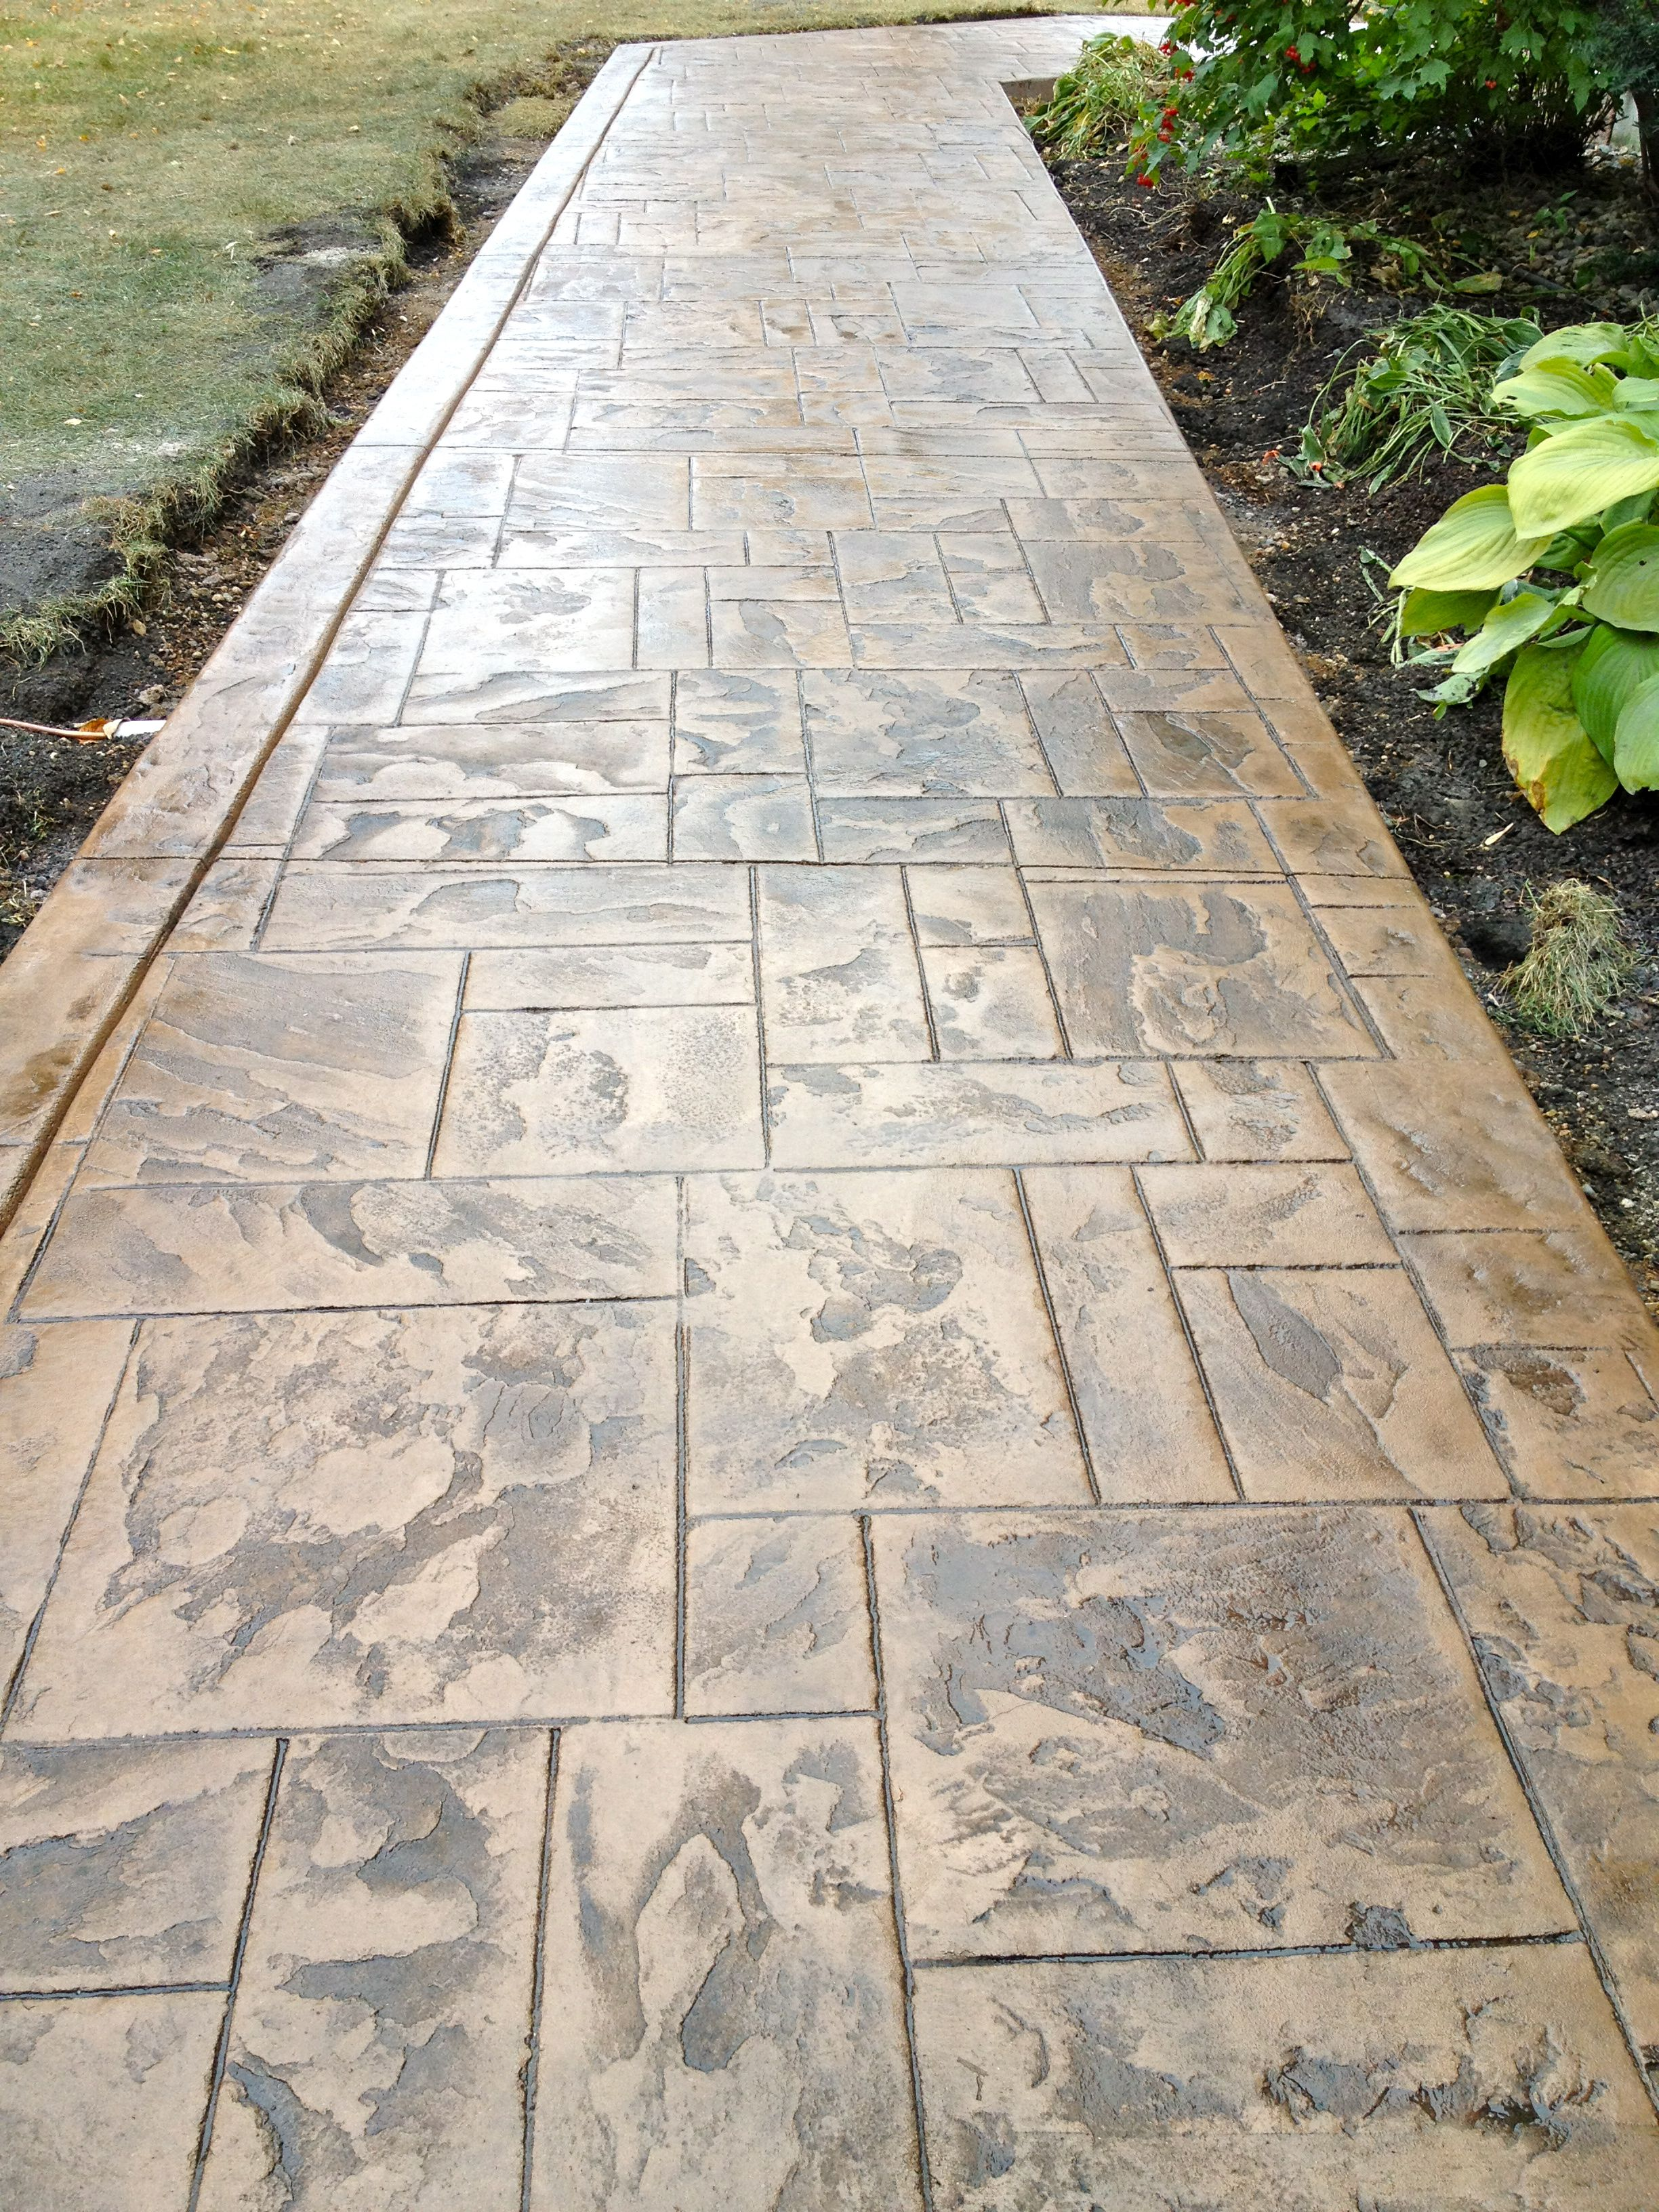 Images Of Stamped Concrete Patios: Stamped Concrete Walkway. Pattern Is Ashler Slate With